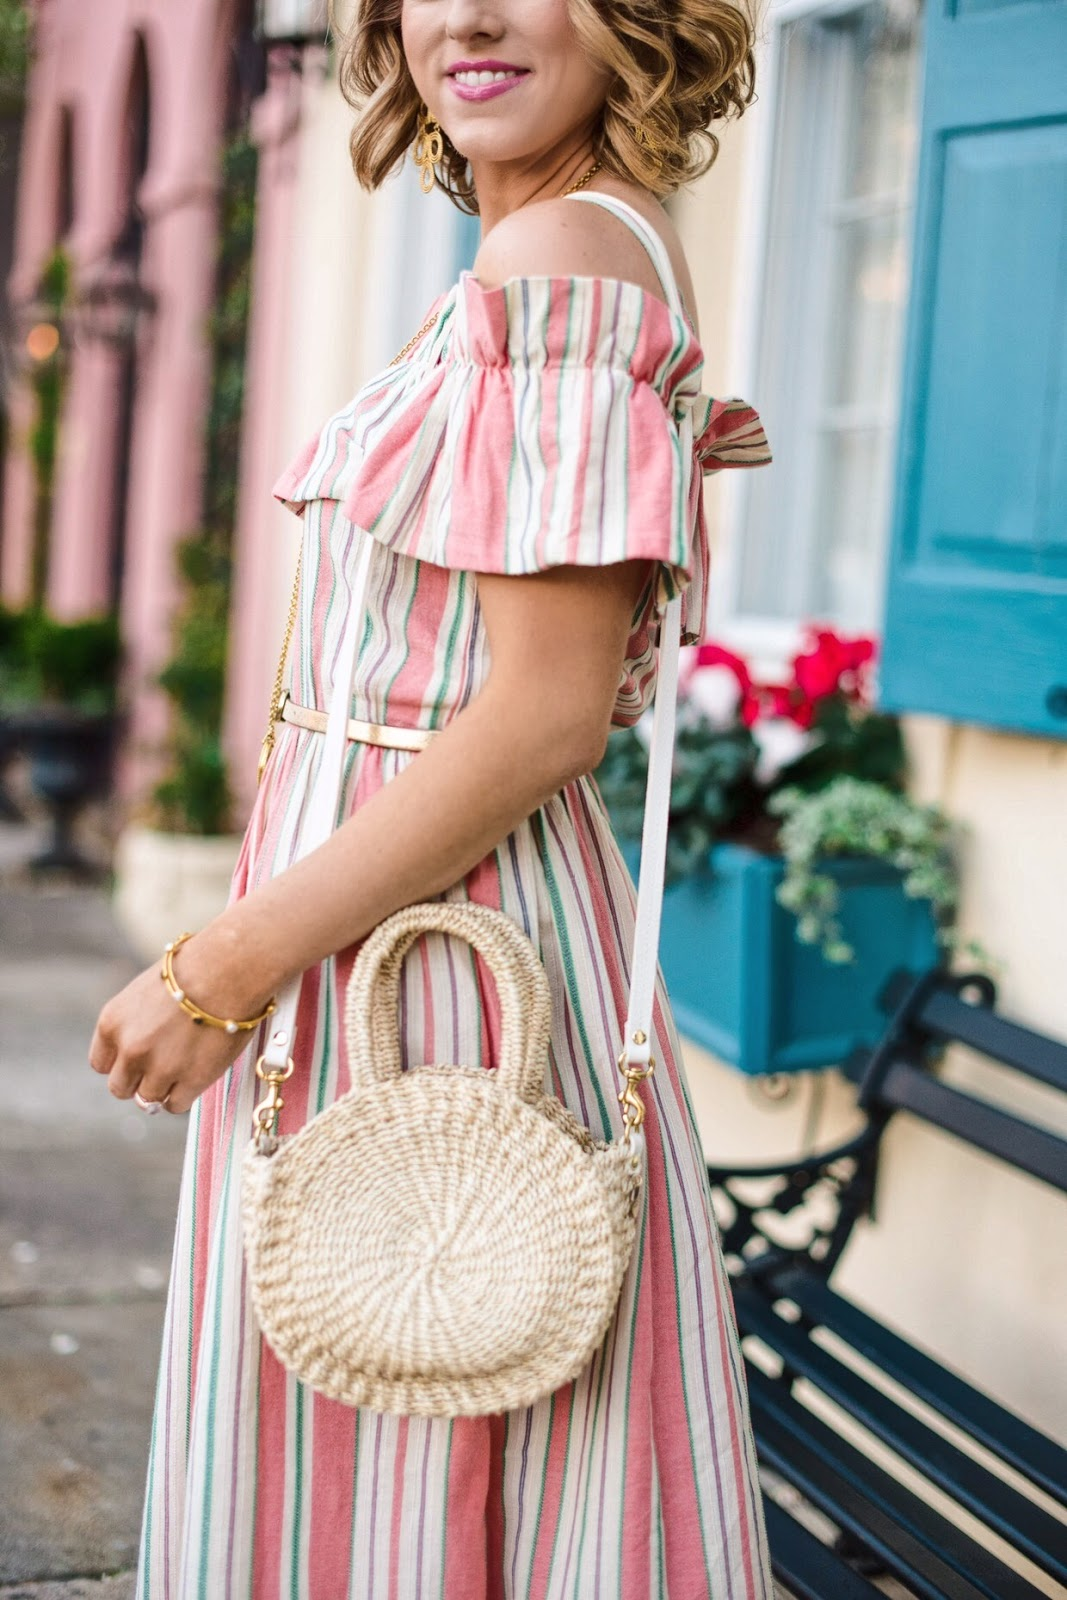 Striped Midi Dress in Charleston, SC. - Something Delightful Blog